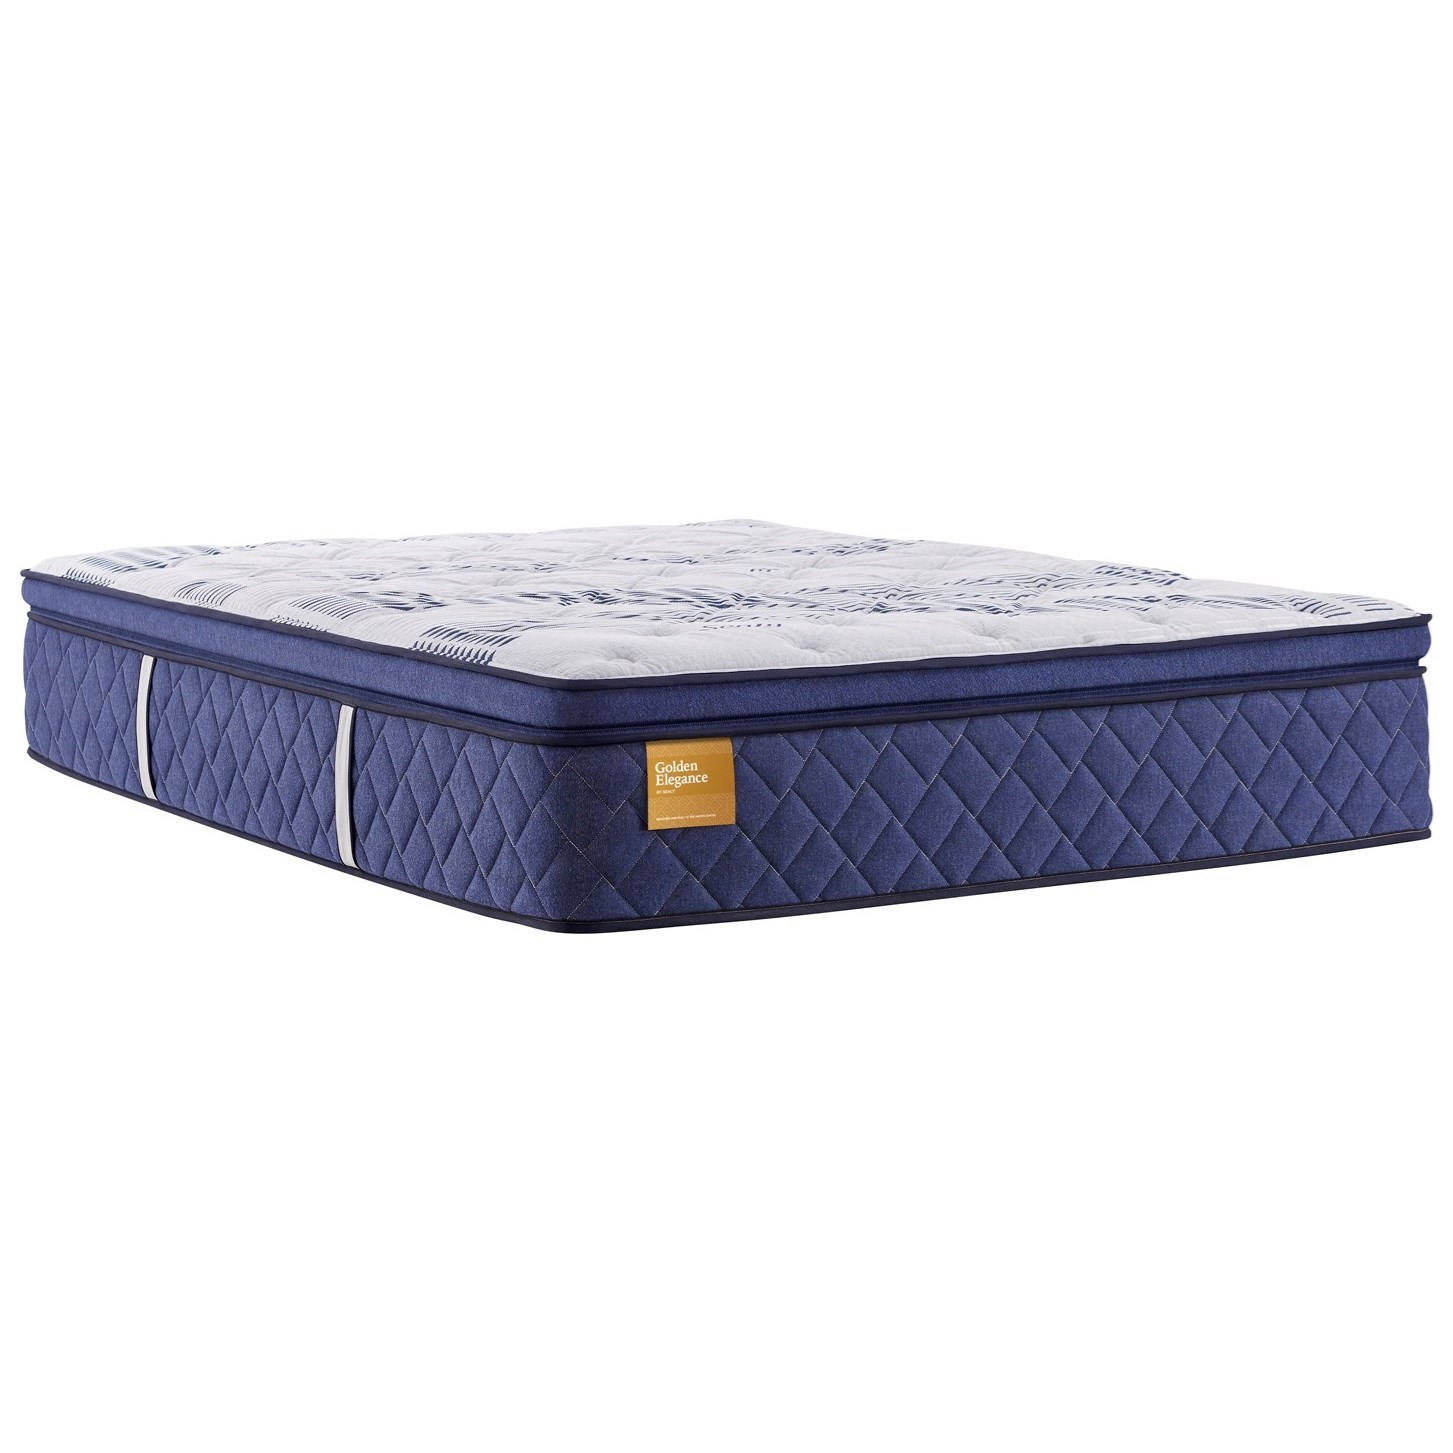 "Elegant Gold Plush PT B6 King 15"" Plush PT Mattress by Sealy at Beck's Furniture"